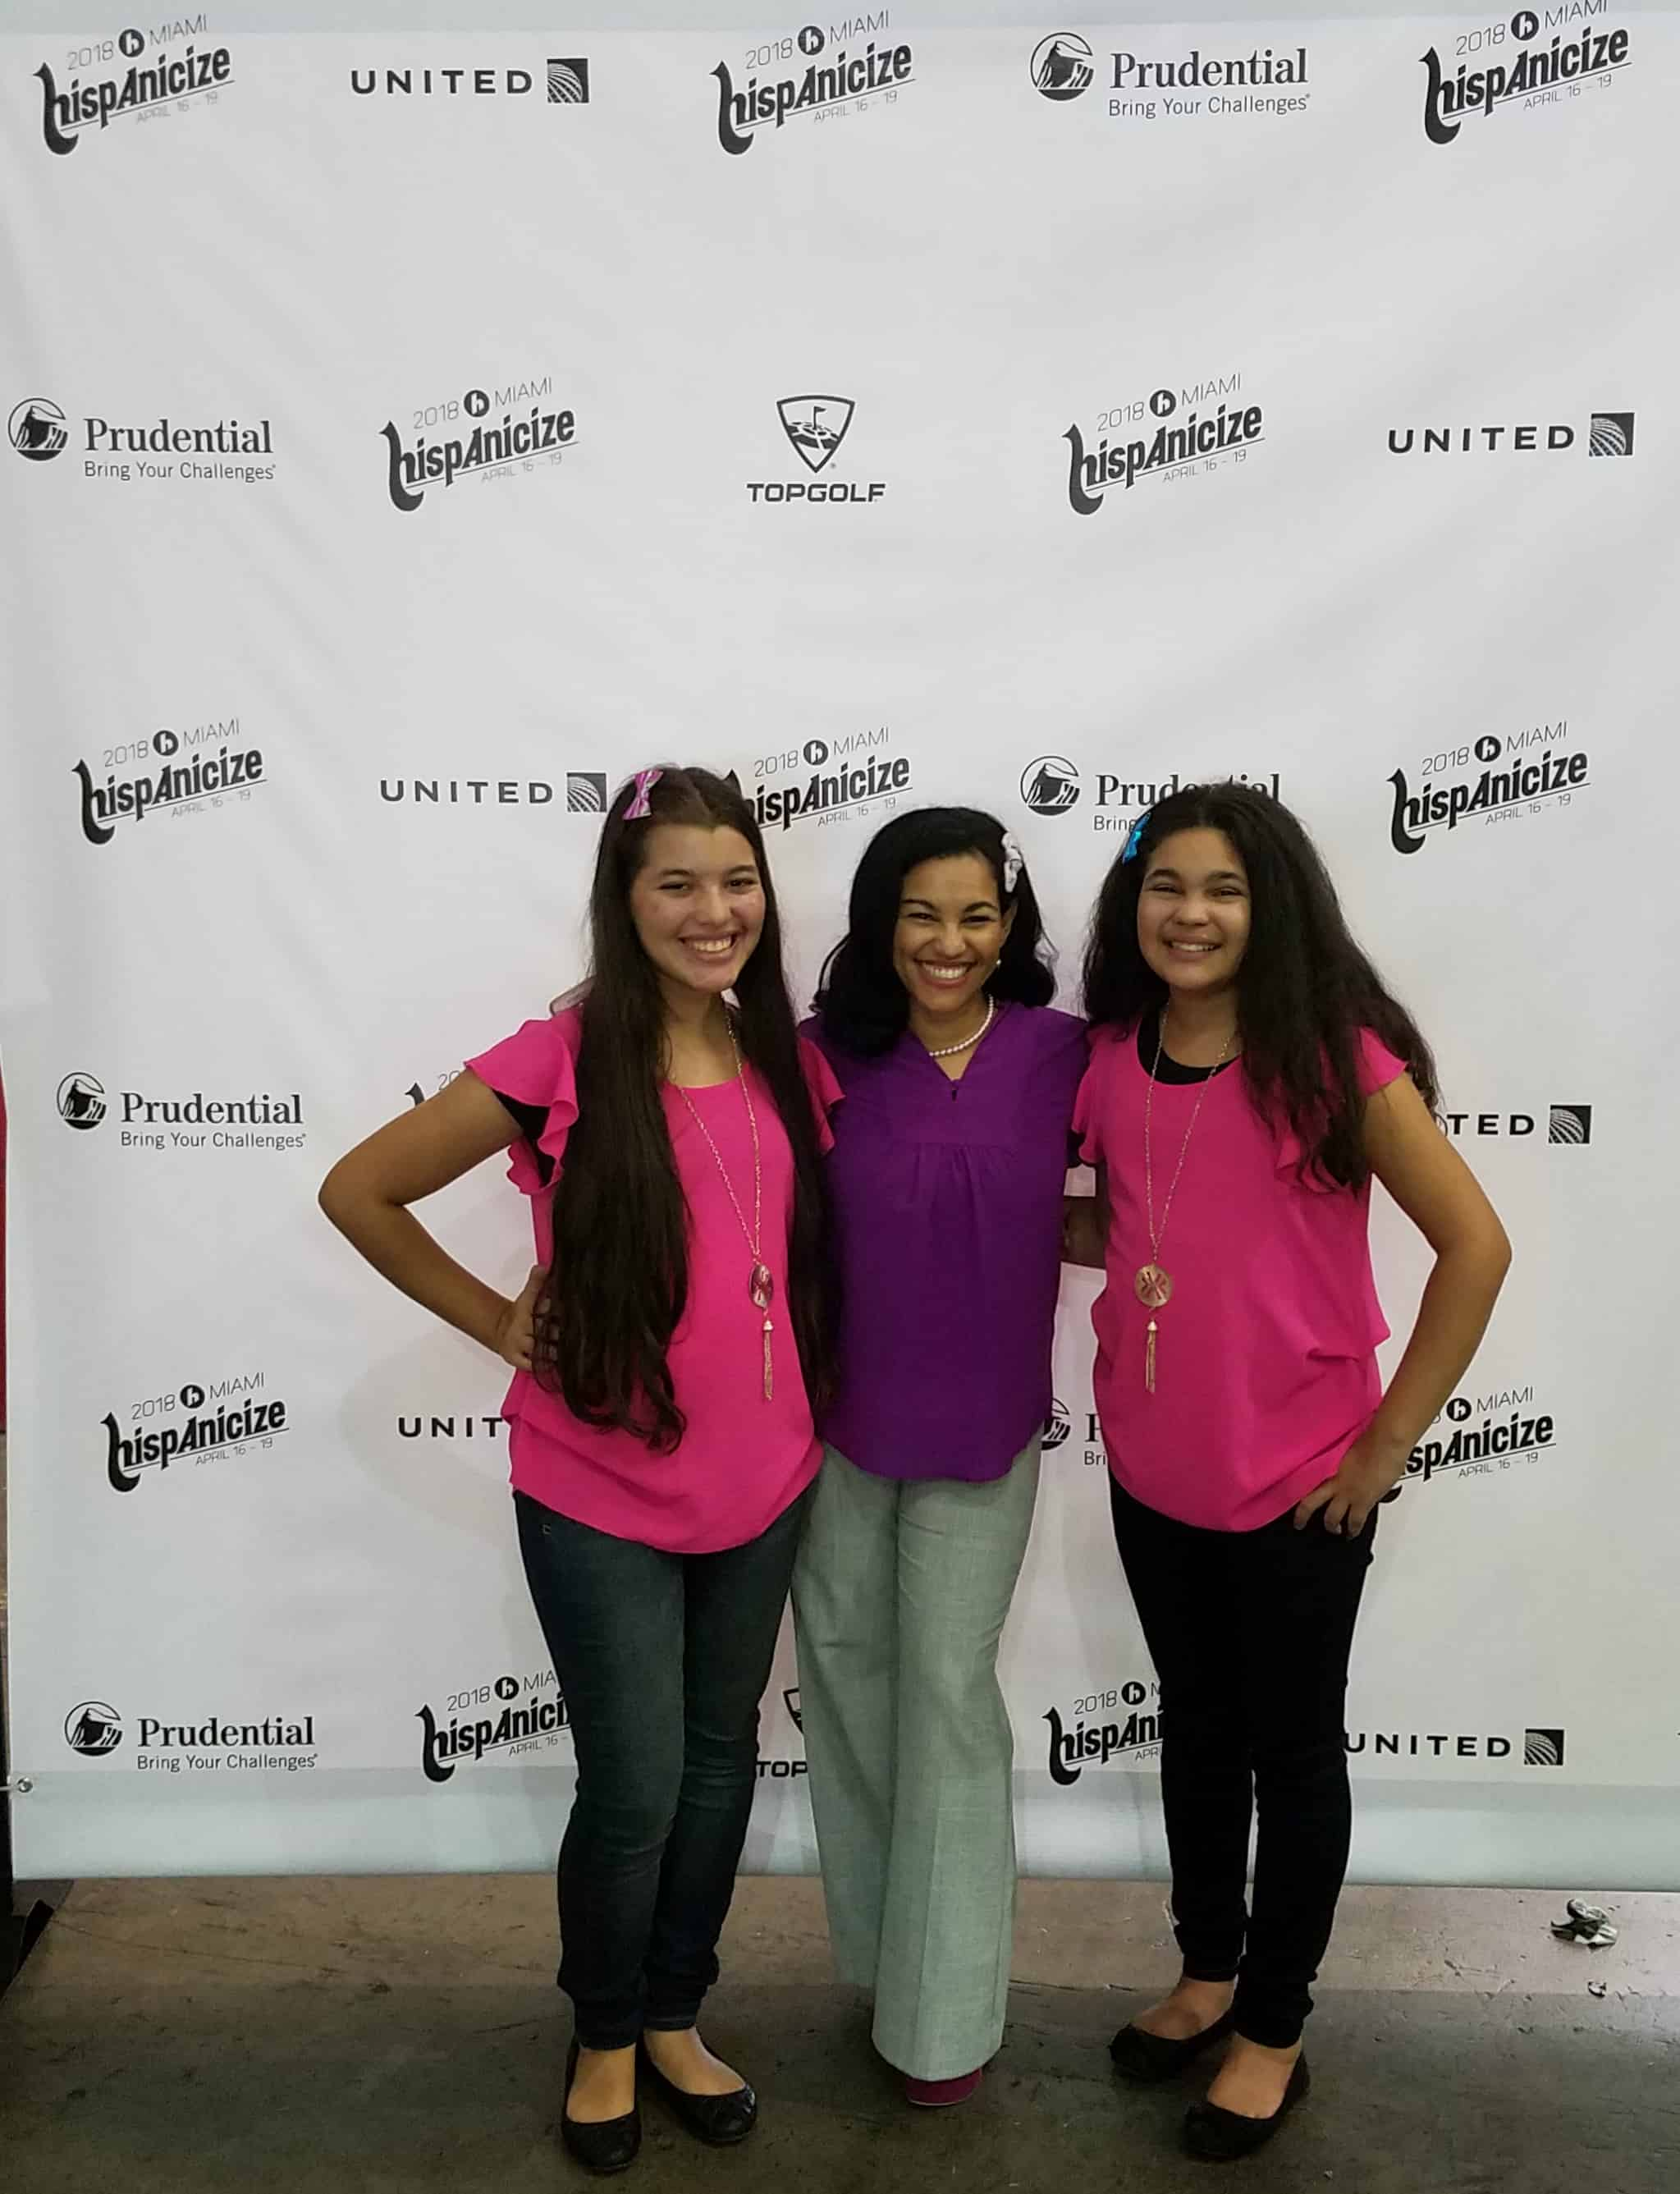 The Positive MOM and her daughters Elisha and Elyssa of WhollyART at Hispanicize Texas in Houston